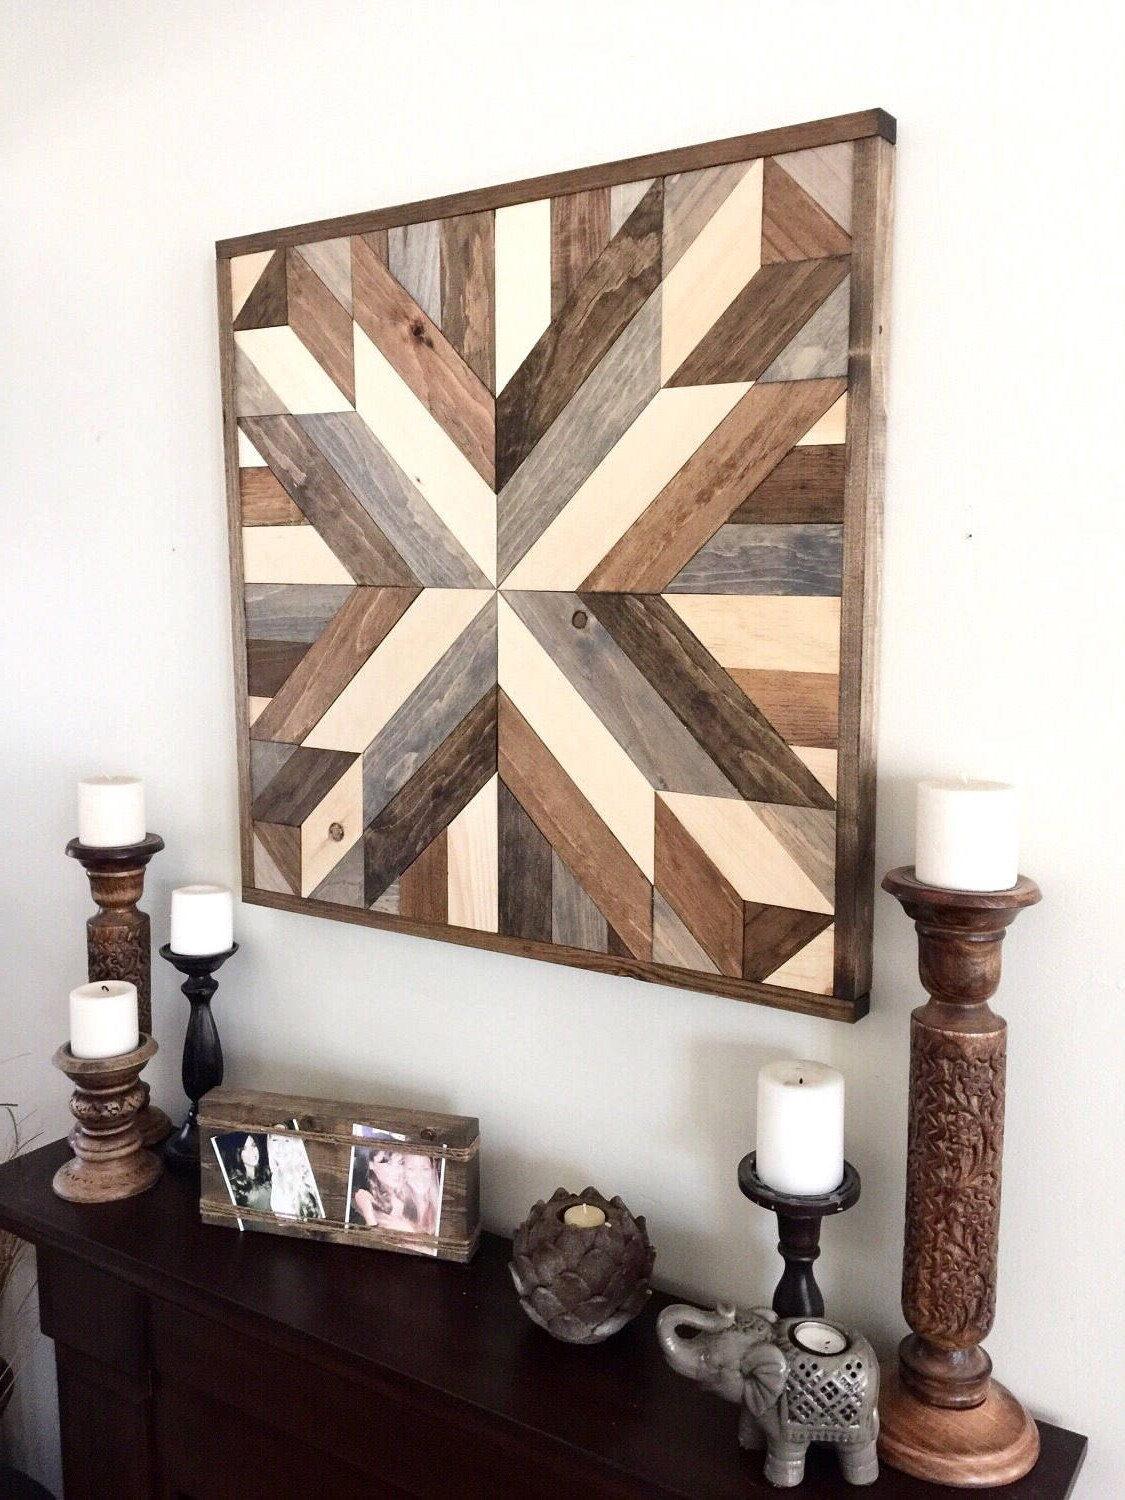 Reclaimed Wood Wall Art, Wood Art, Rustic Wall Decor, Farmhouse Pertaining To Preferred Reclaimed Wood Wall Art (View 13 of 15)